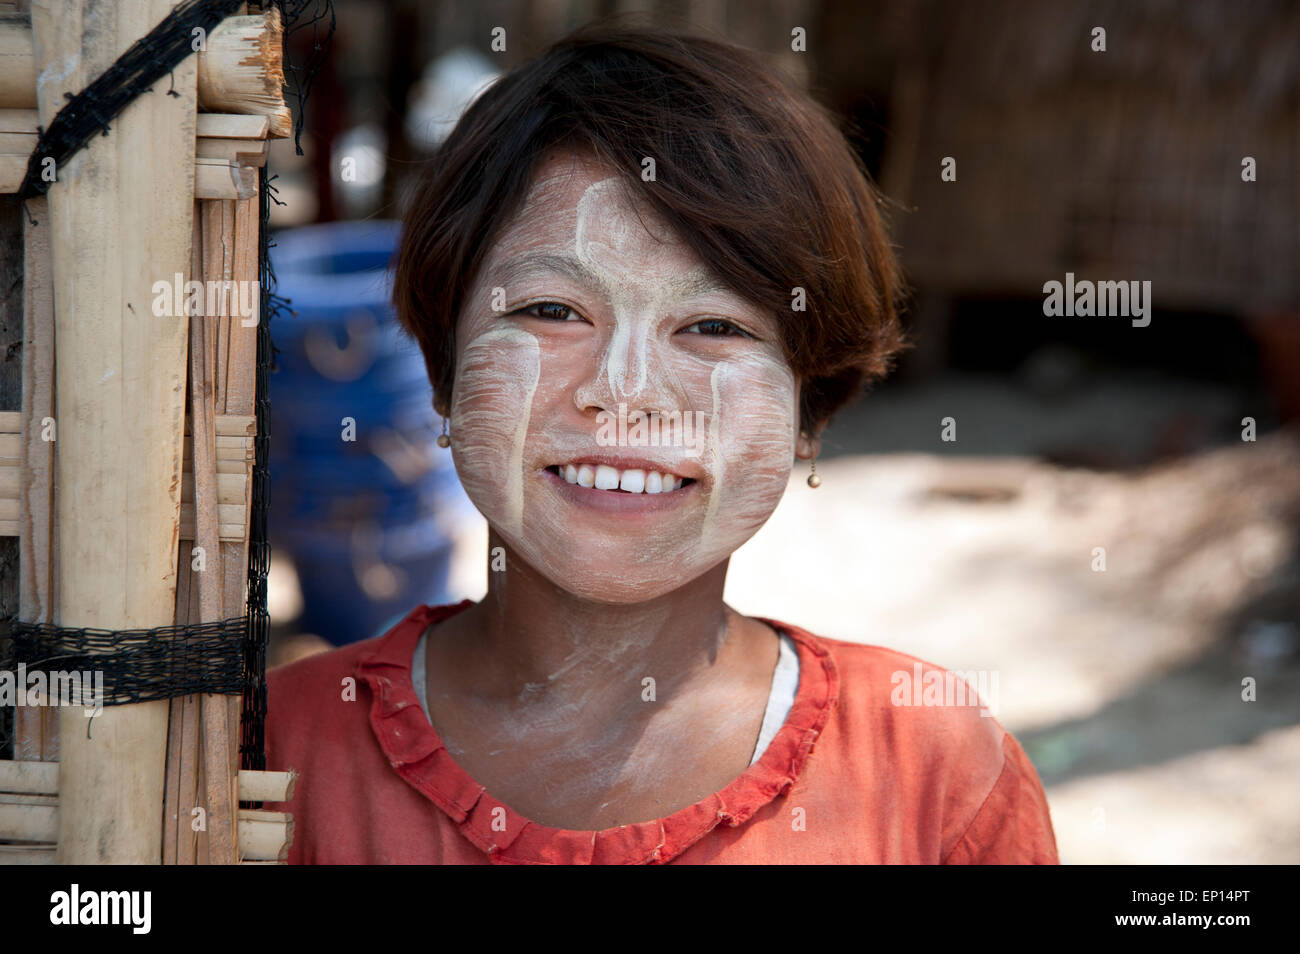 A portrait of a happy smiling young Burmese girl with sandalwood